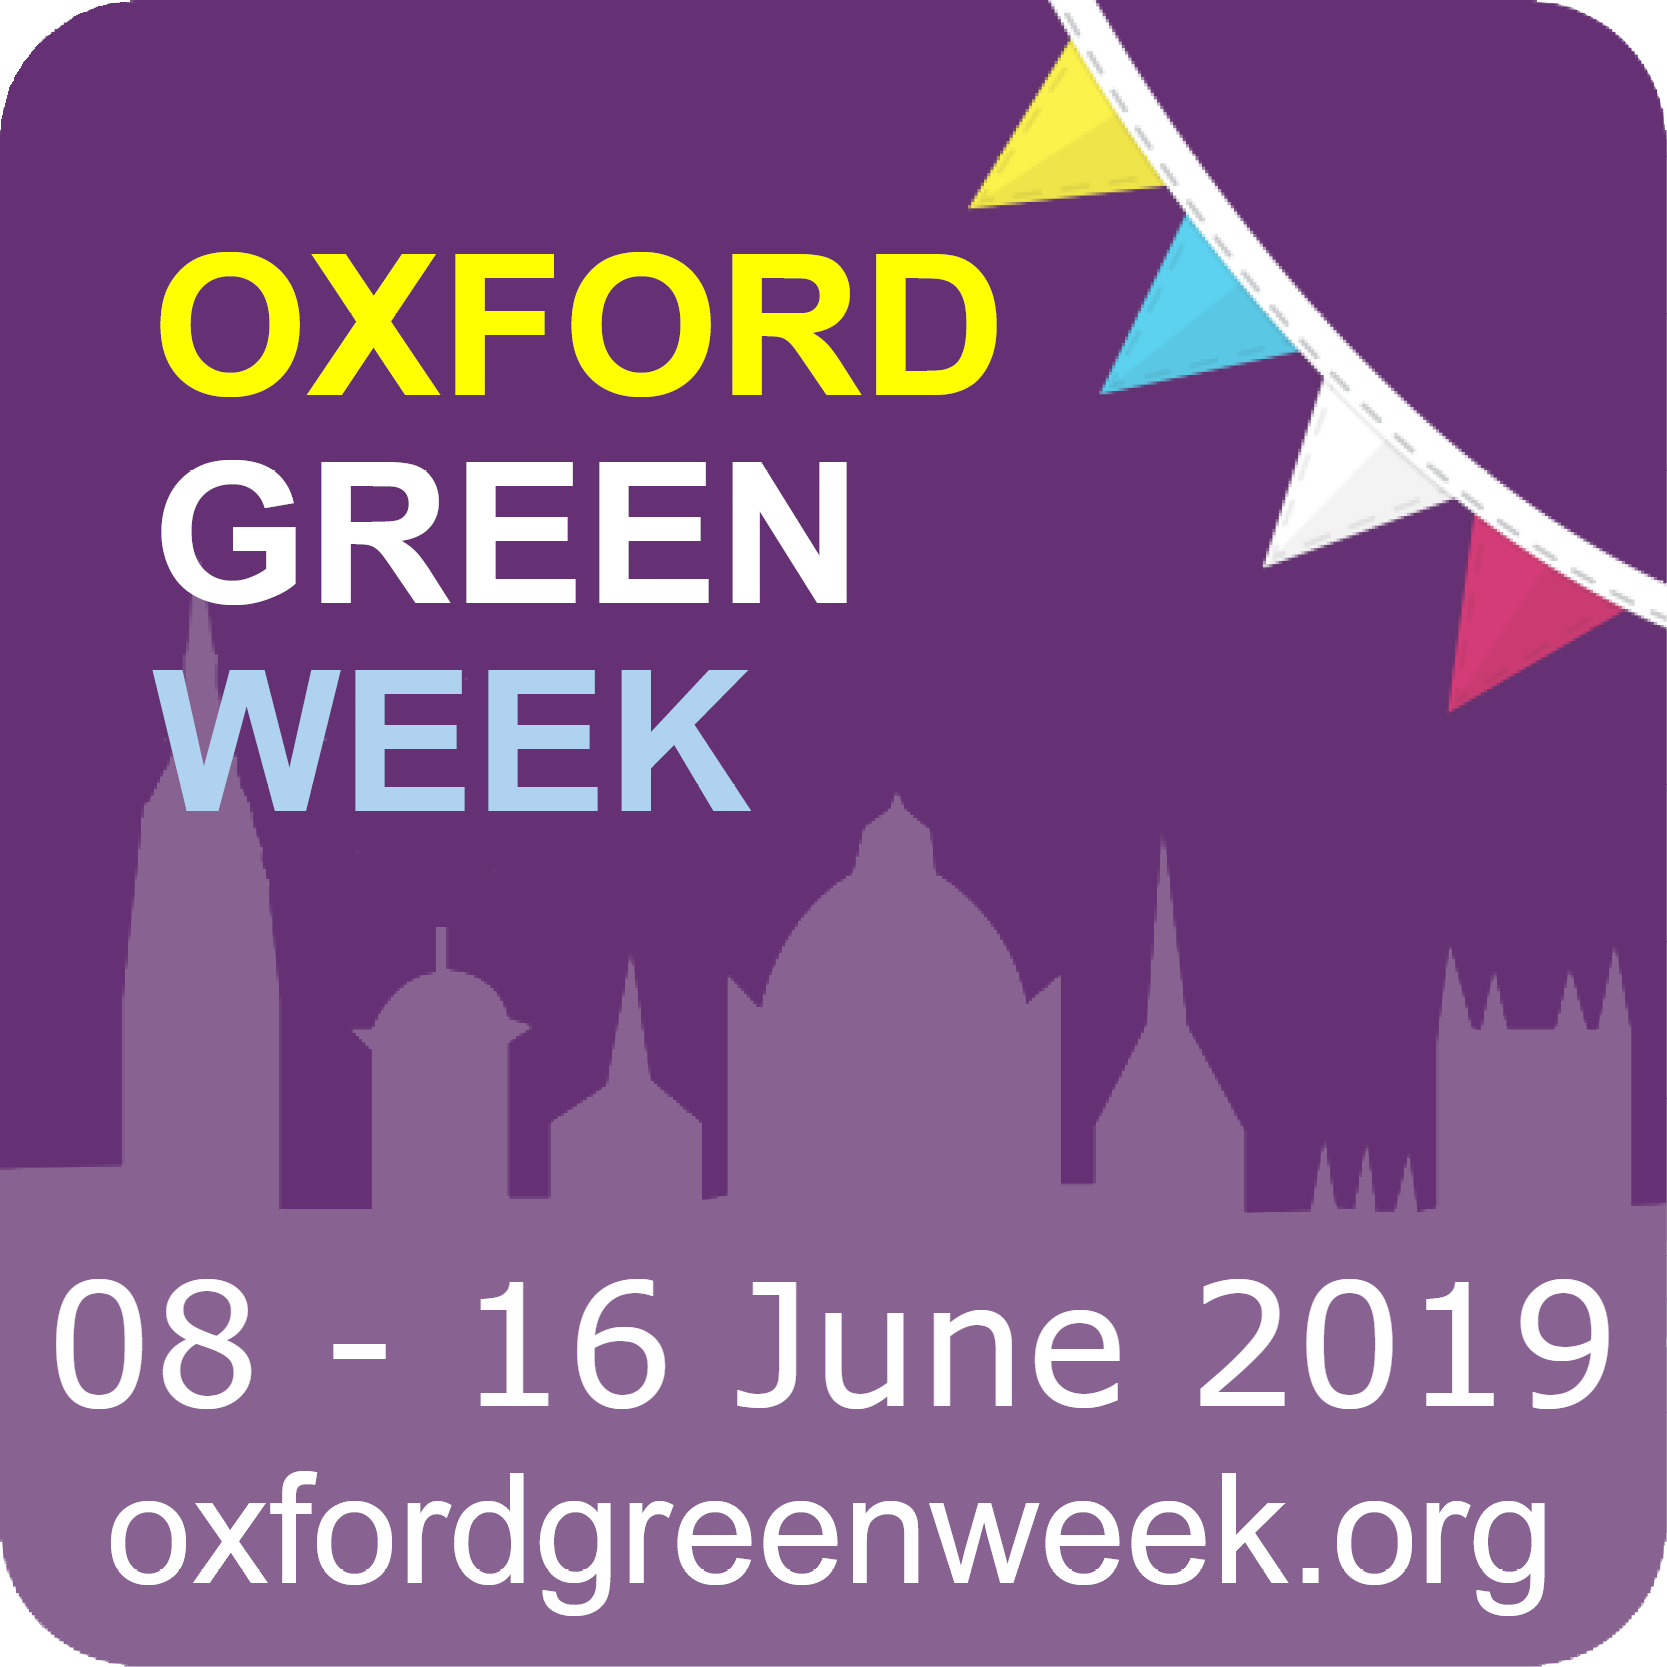 Oxford Green Week 2019 logo